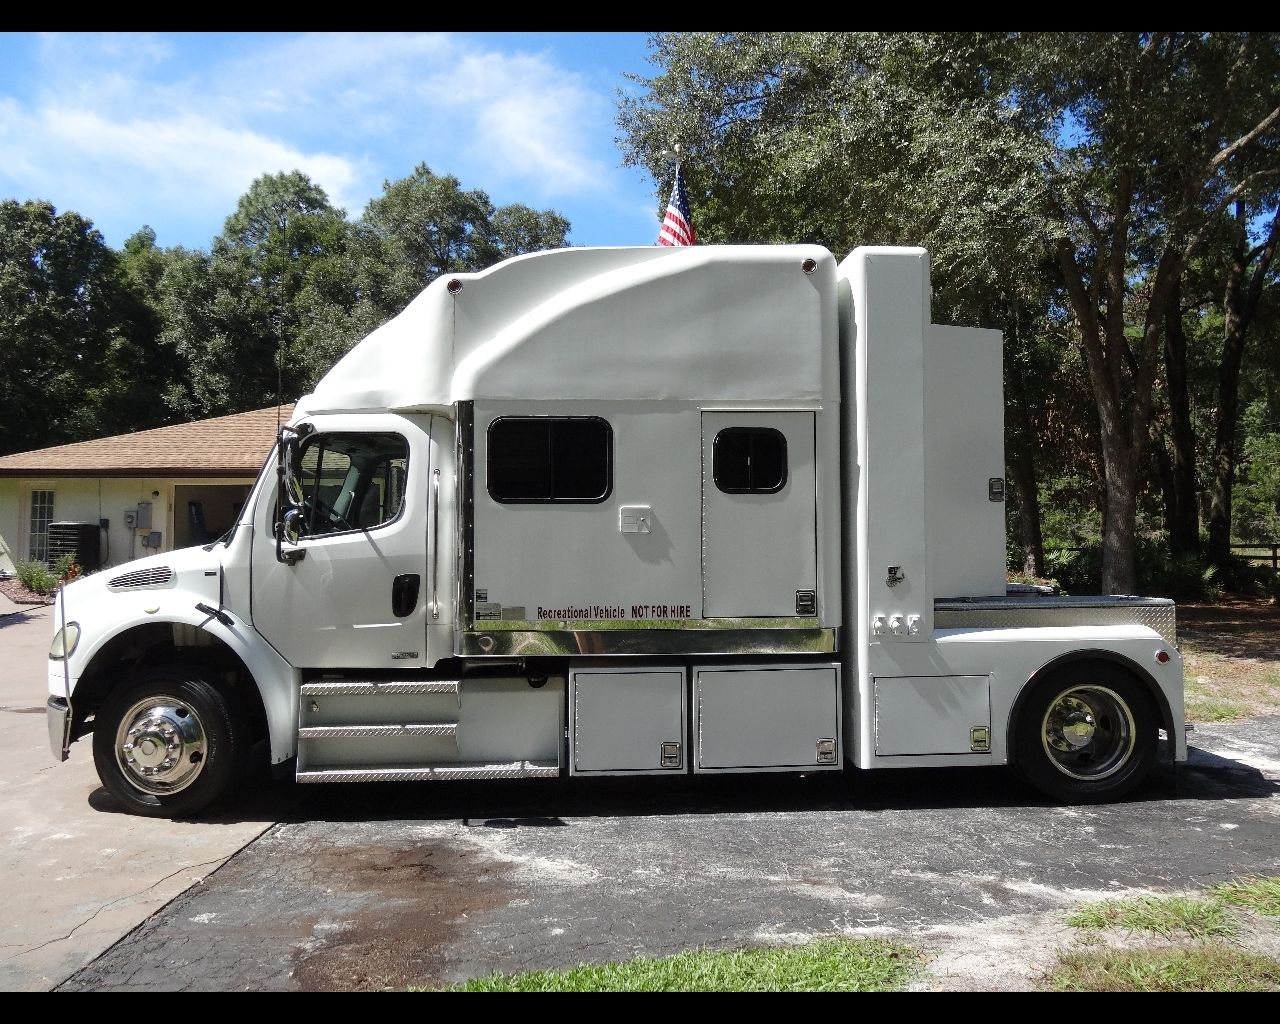 A Nice Step Up Is A Tractor That Has Been Professionally Converted Into A  Hauler Such As This CrewChief. This One Has A Sofa, Bathroom, A Small  Kitchen, ...